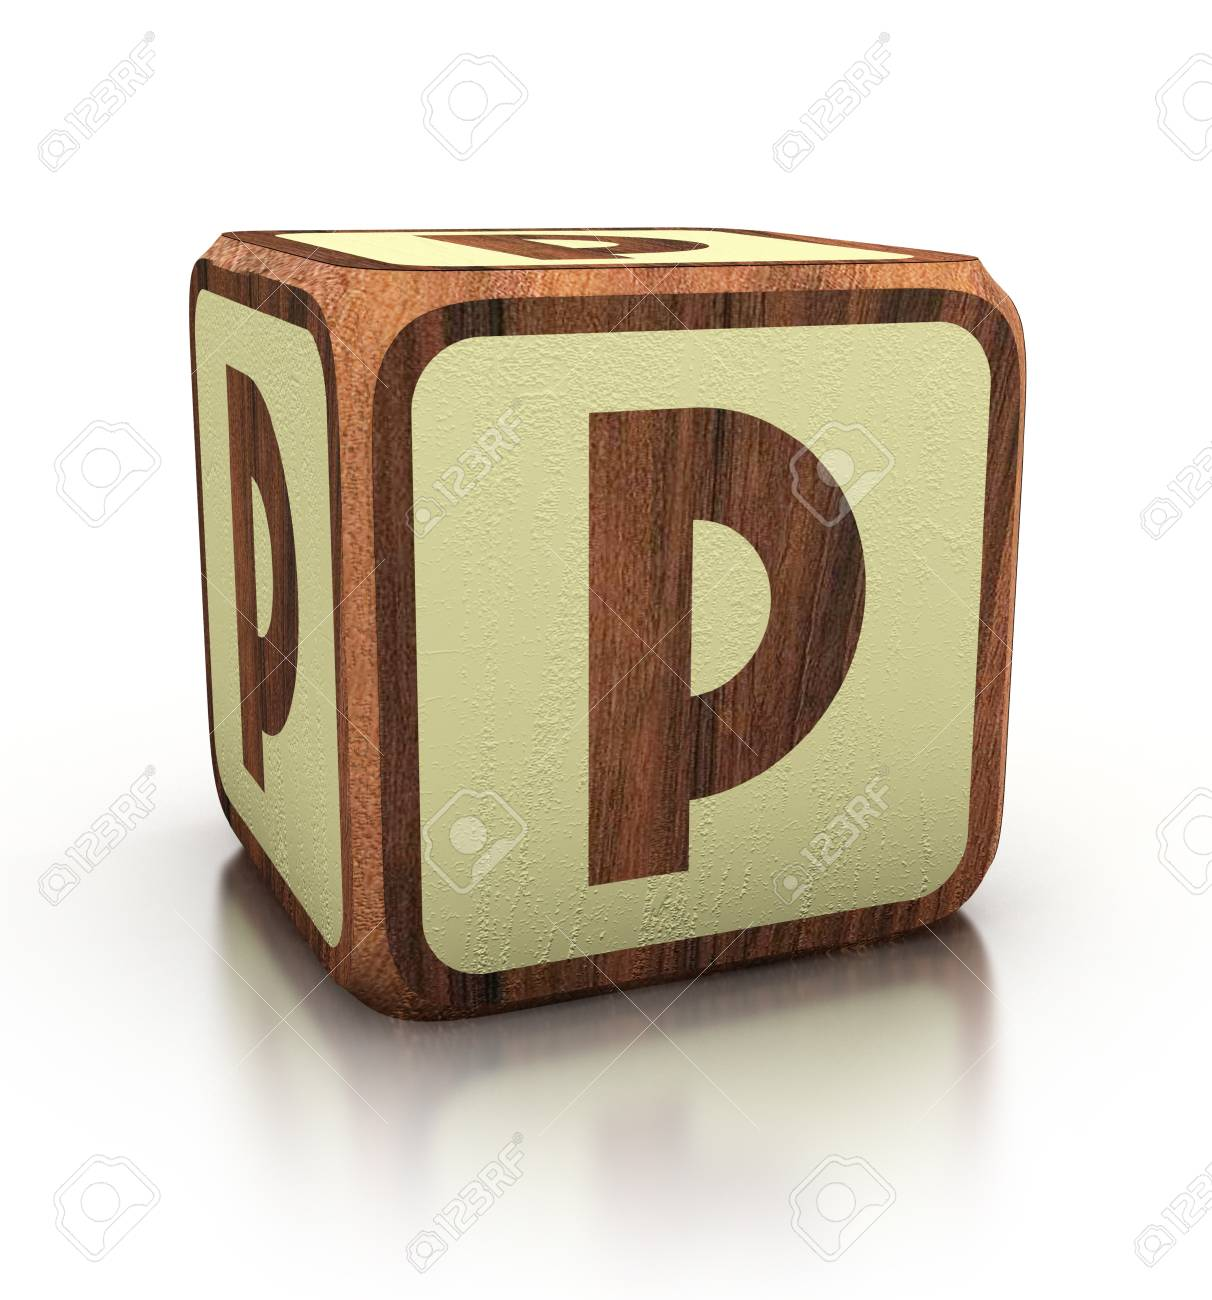 Letter P Wooden Blocks Font Isolated On White D Illustration